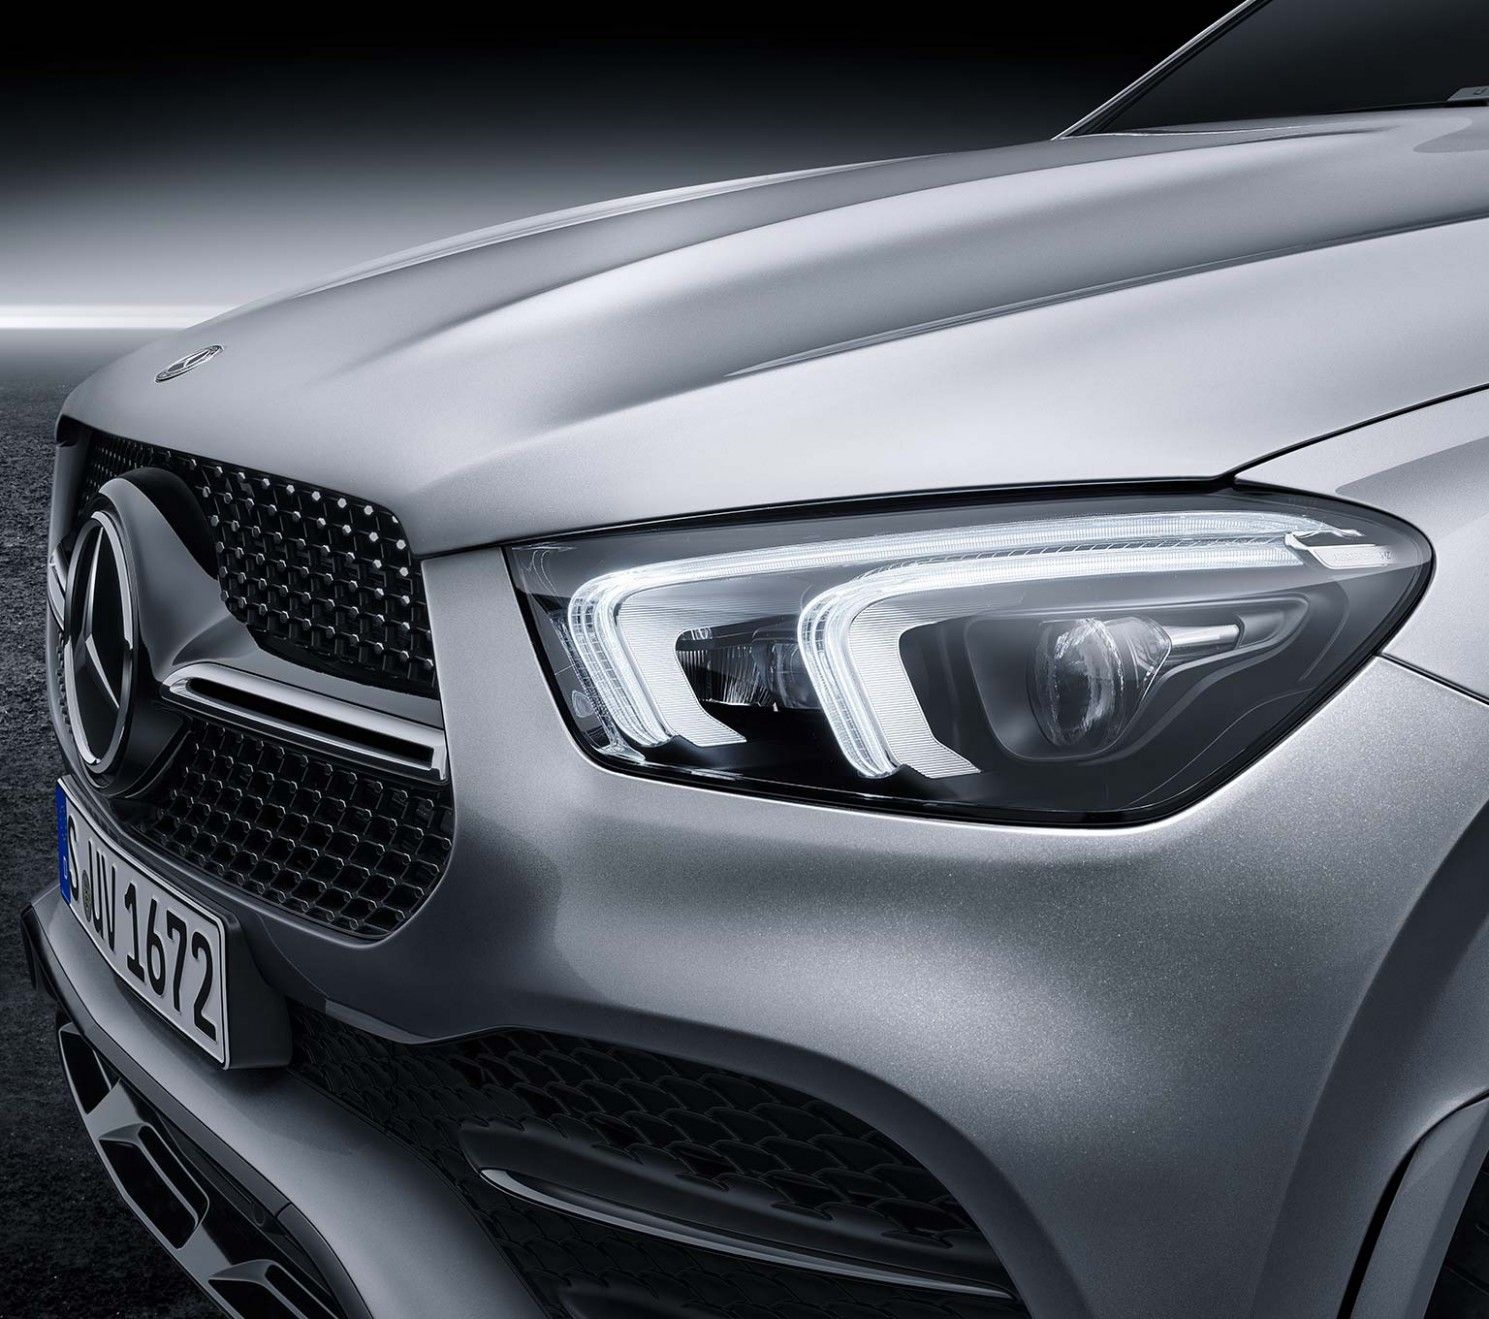 Understanding The Background Of 2020 Mercedes GLE Design